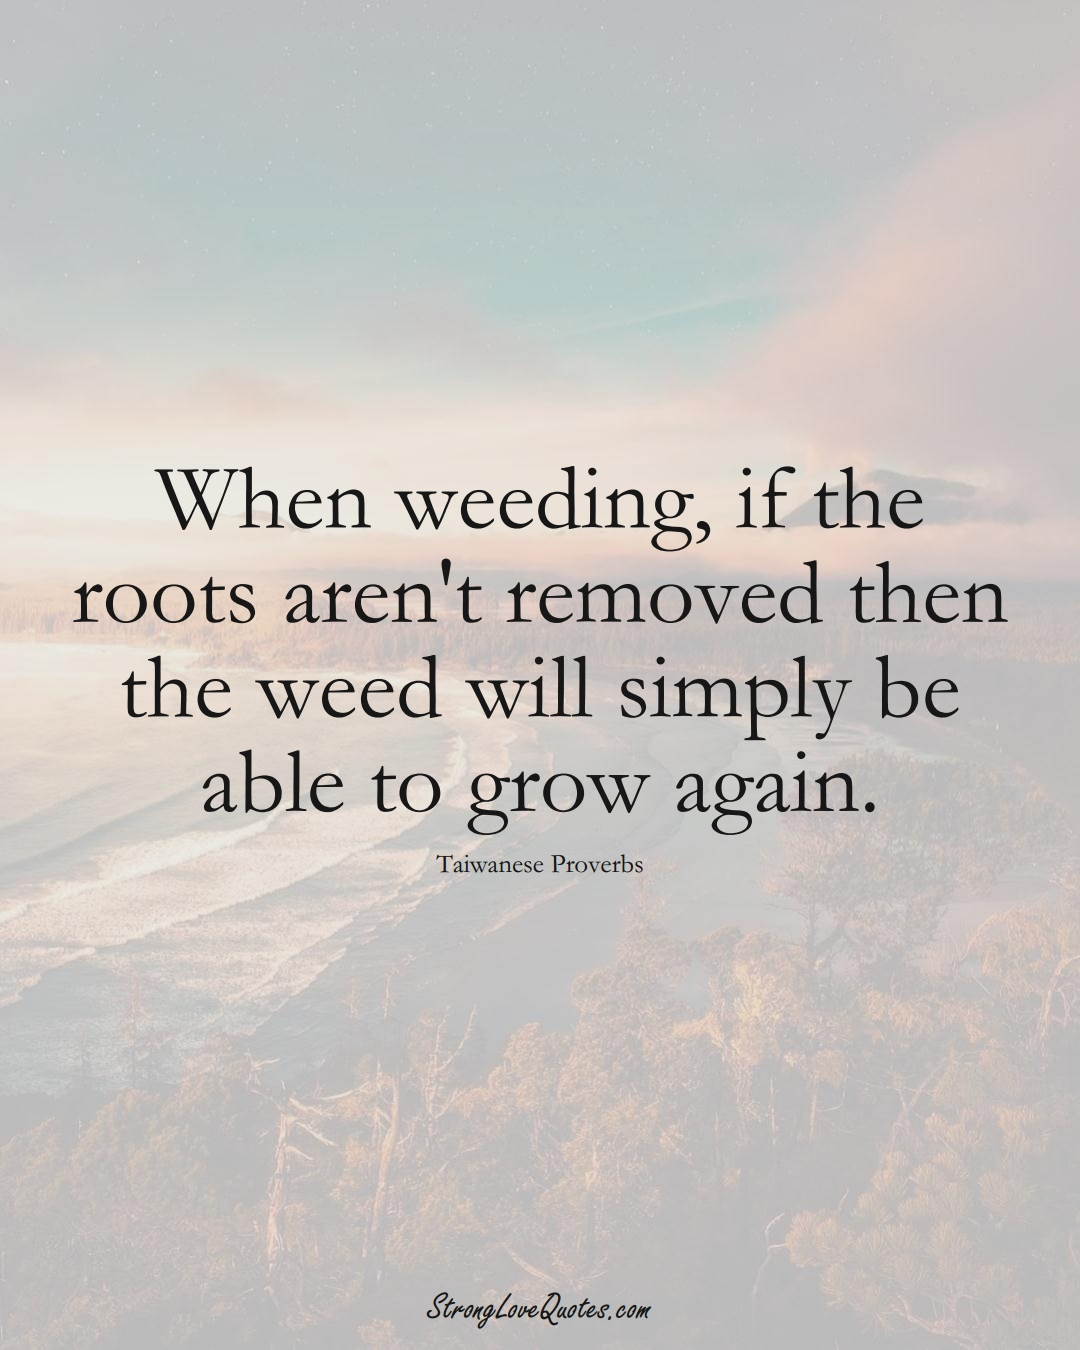 When weeding, if the roots aren't removed then the weed will simply be able to grow again. (Taiwanese Sayings);  #AsianSayings